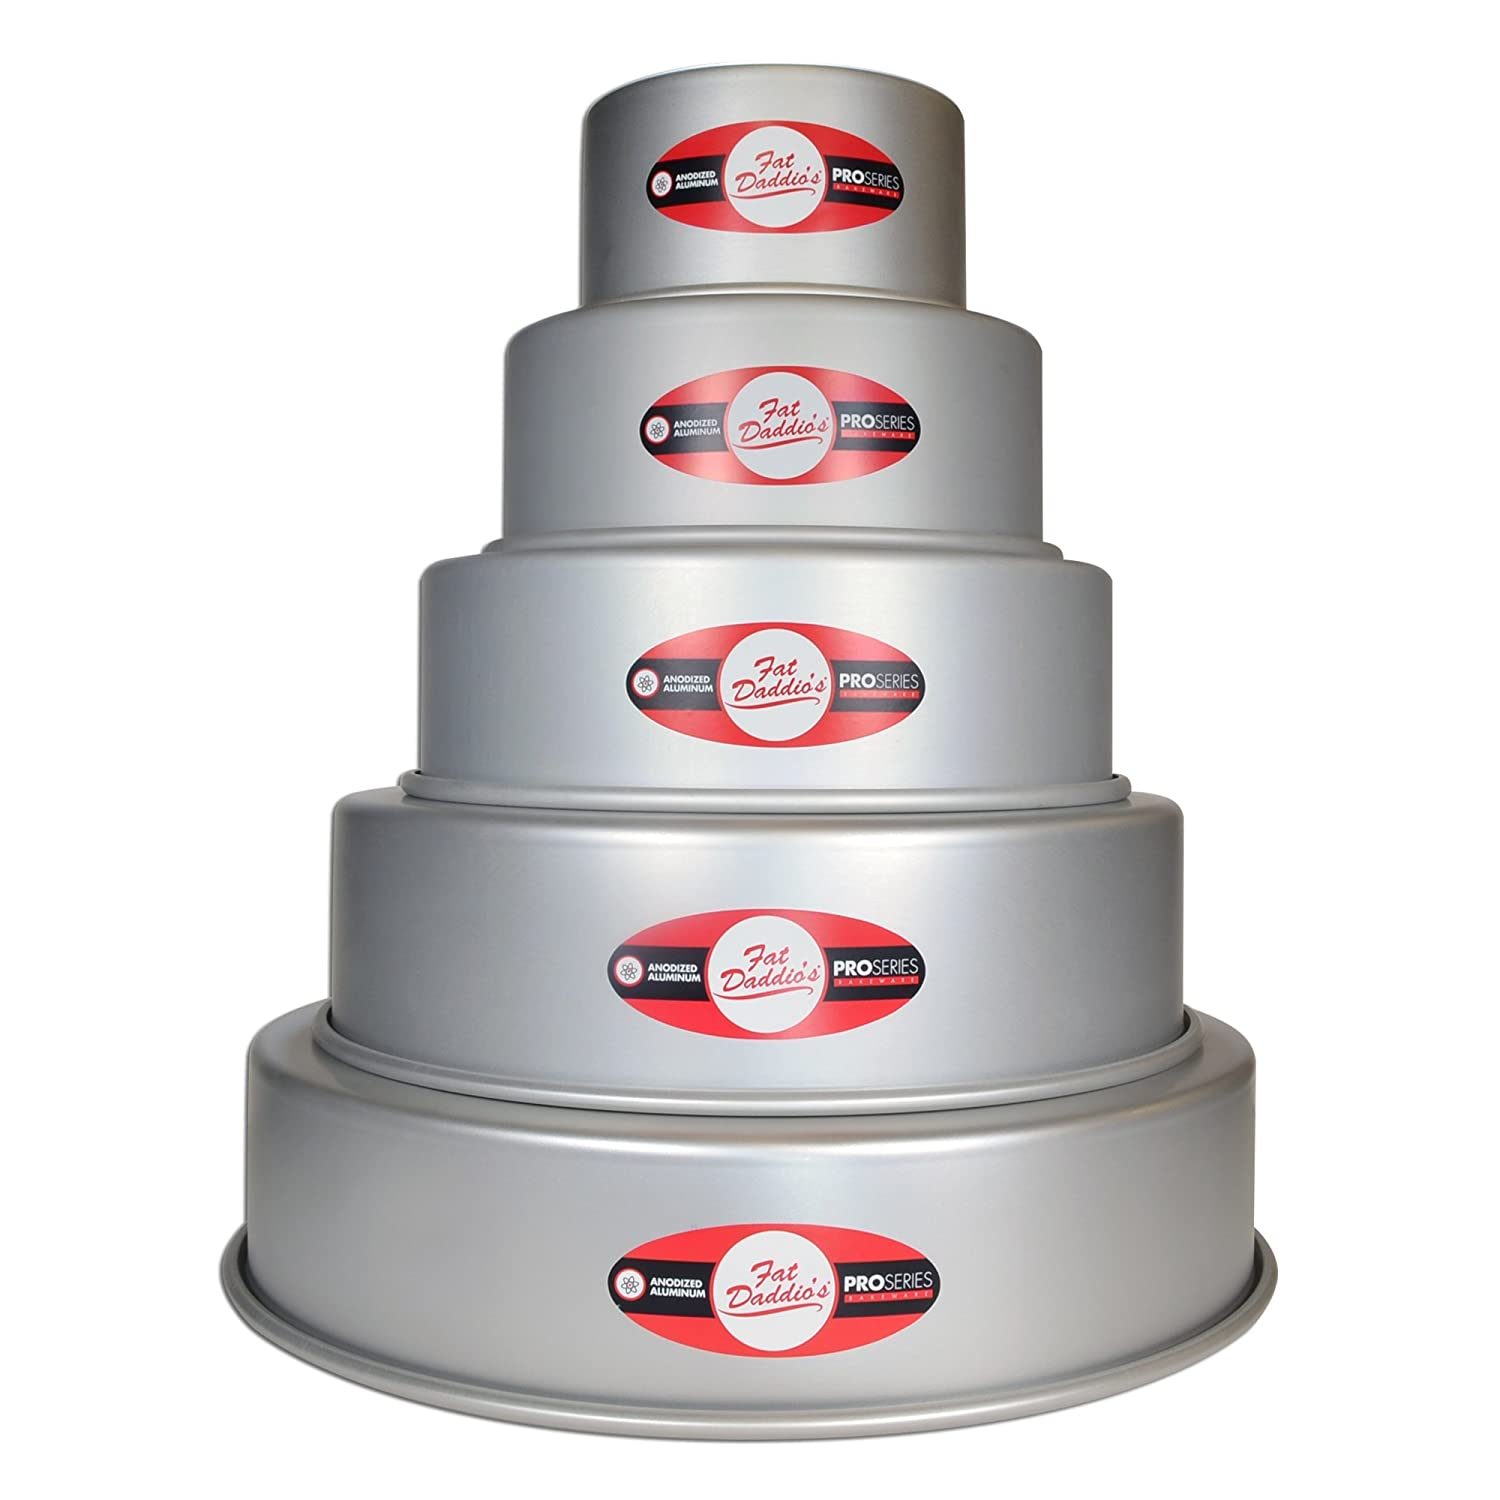 8 Fat Daddios Fat Daddios 4 Tier 6 10 and 12 Round Pan Set 8 10 and 12 Round Pan Set PRD-4TIER